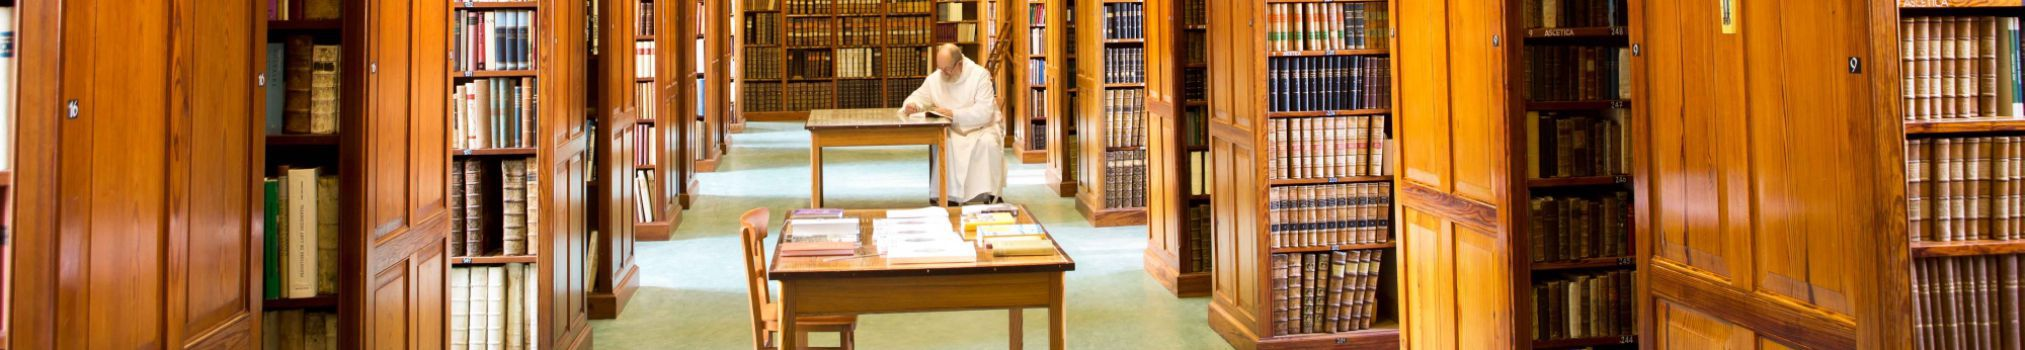 A monk studies and reads in the abbey library.